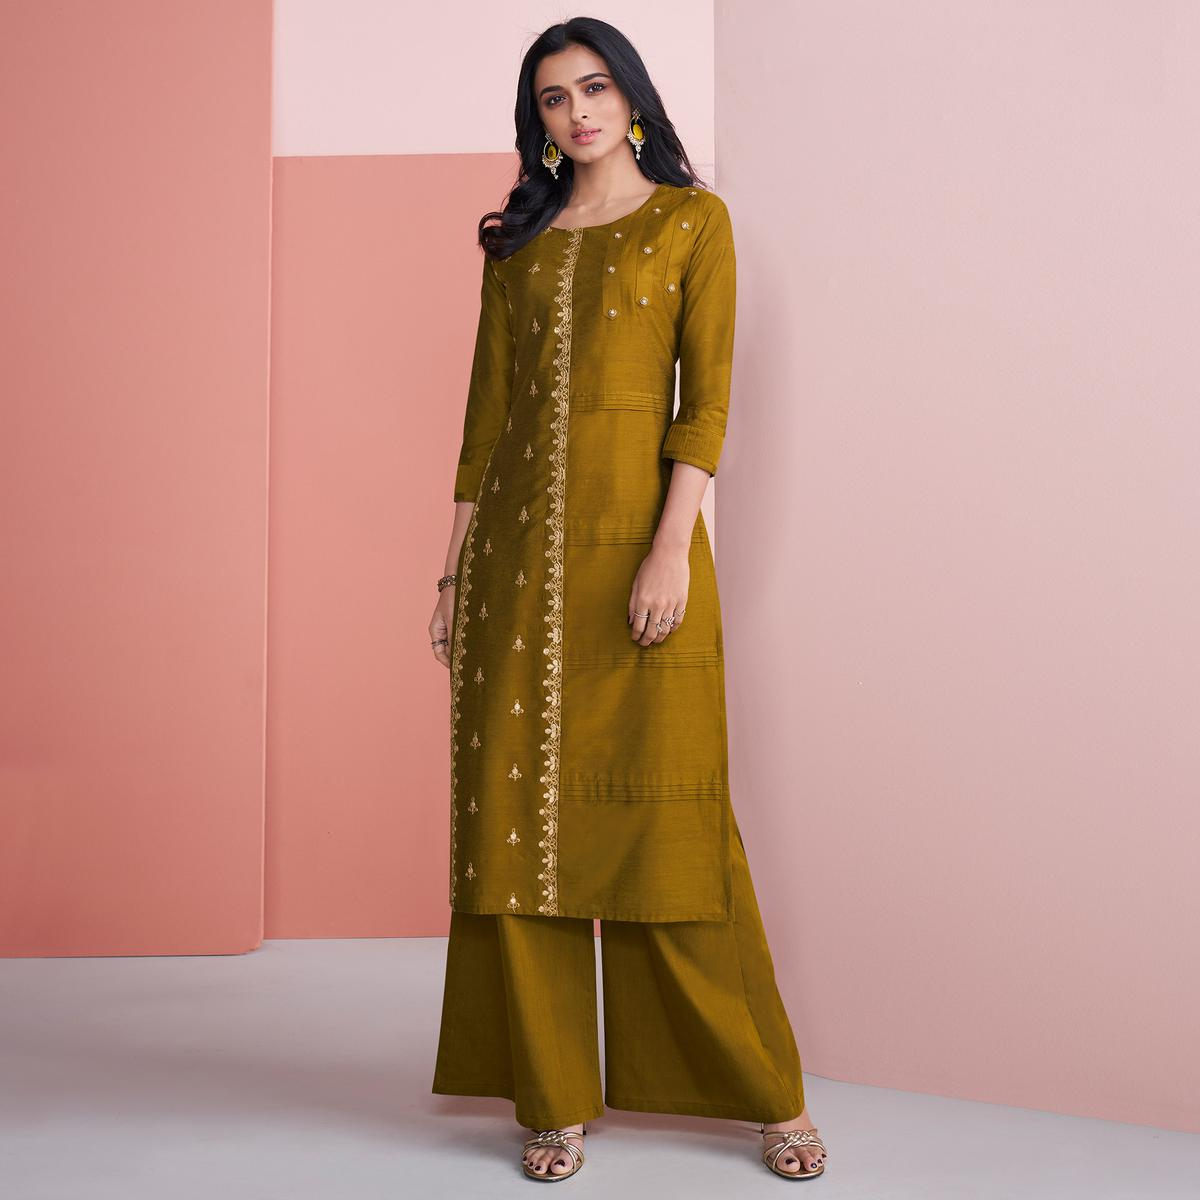 Mesmerising Mehendi Green Colored Partywear Embroidered Pure Viscose Silk Palazzo Suit